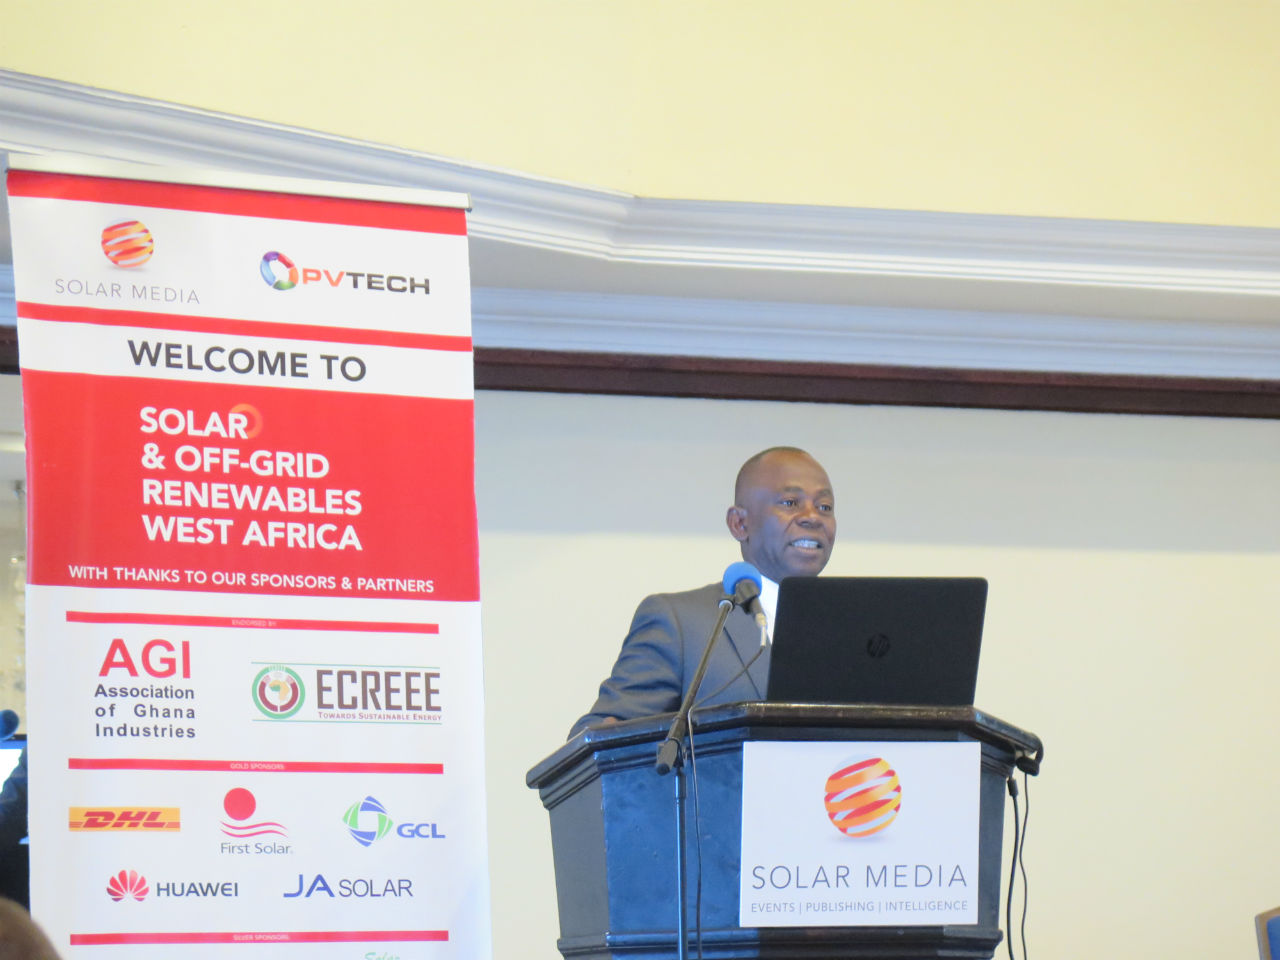 Mahamma Kappiah addressed the Solar and Off-grid Renewables West Africa conference in Accra, Ghana